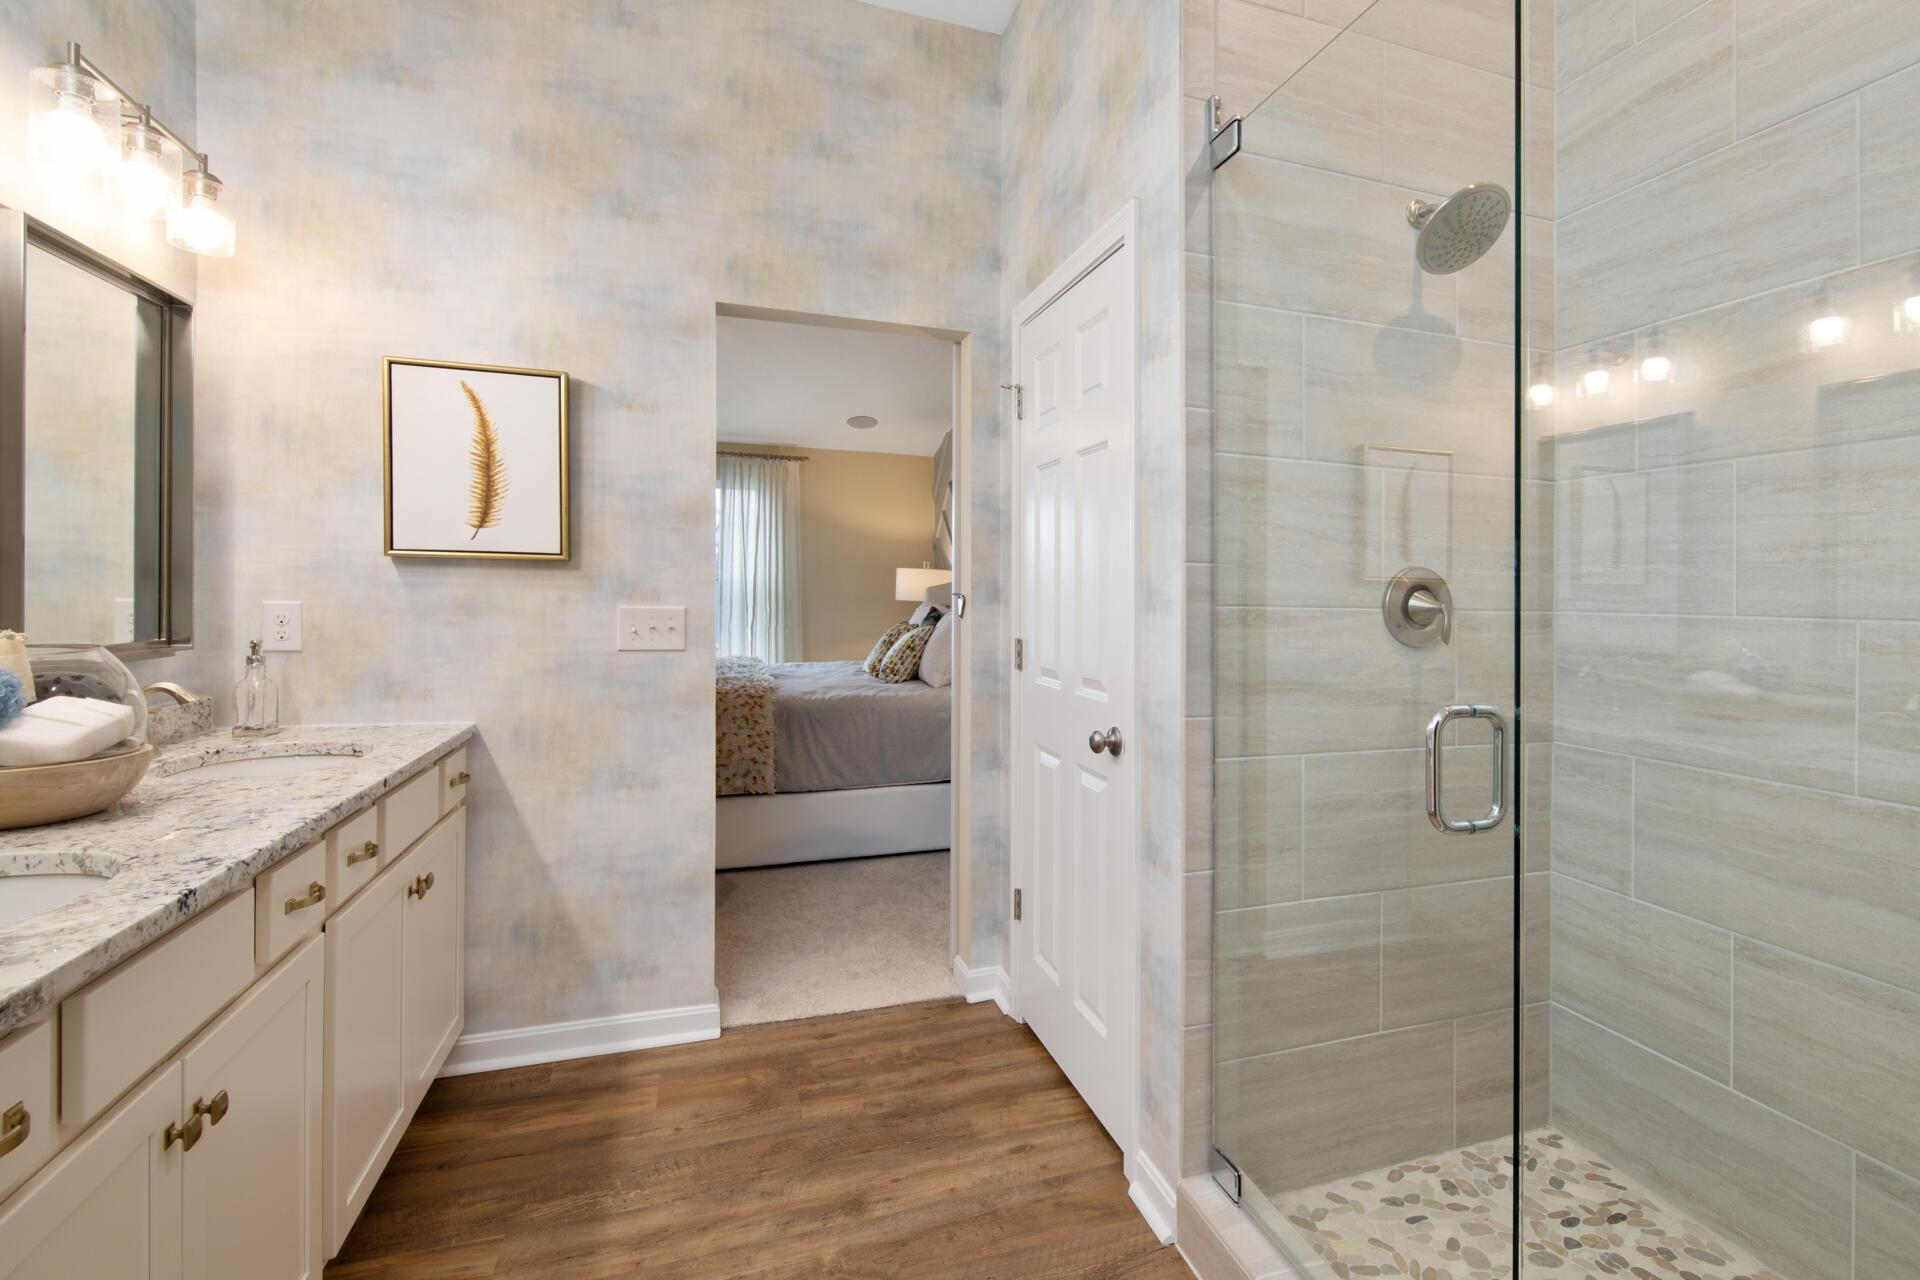 Bathroom featured in the Ashton By Drees Homes in Cincinnati, KY